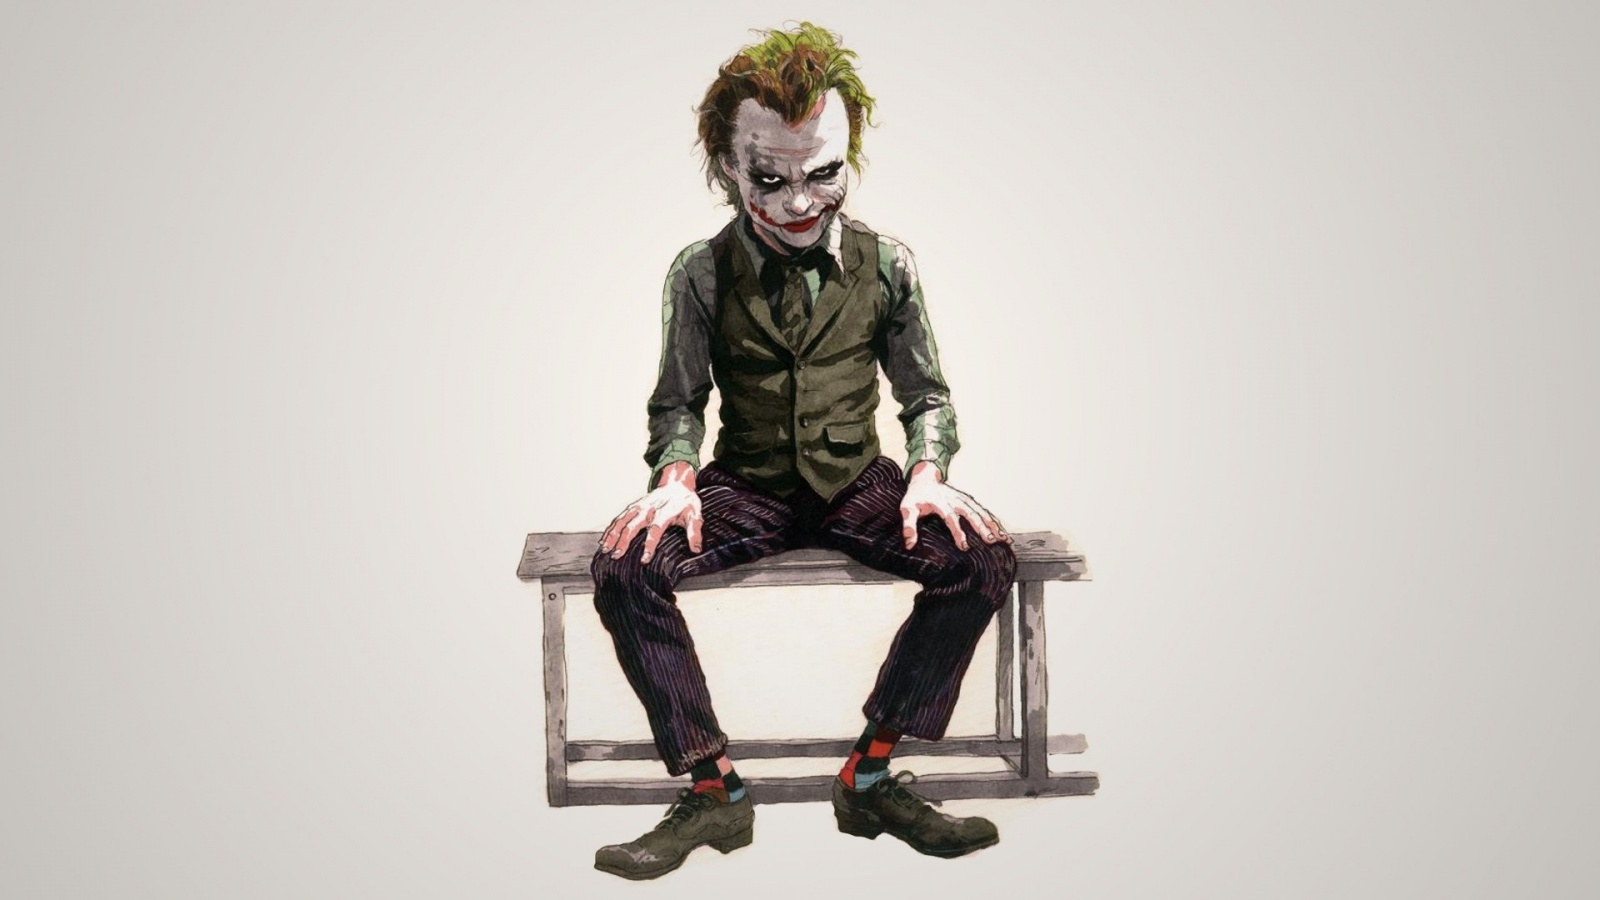 Evil Joker Cartoon Wallpapers 1600x900 205162